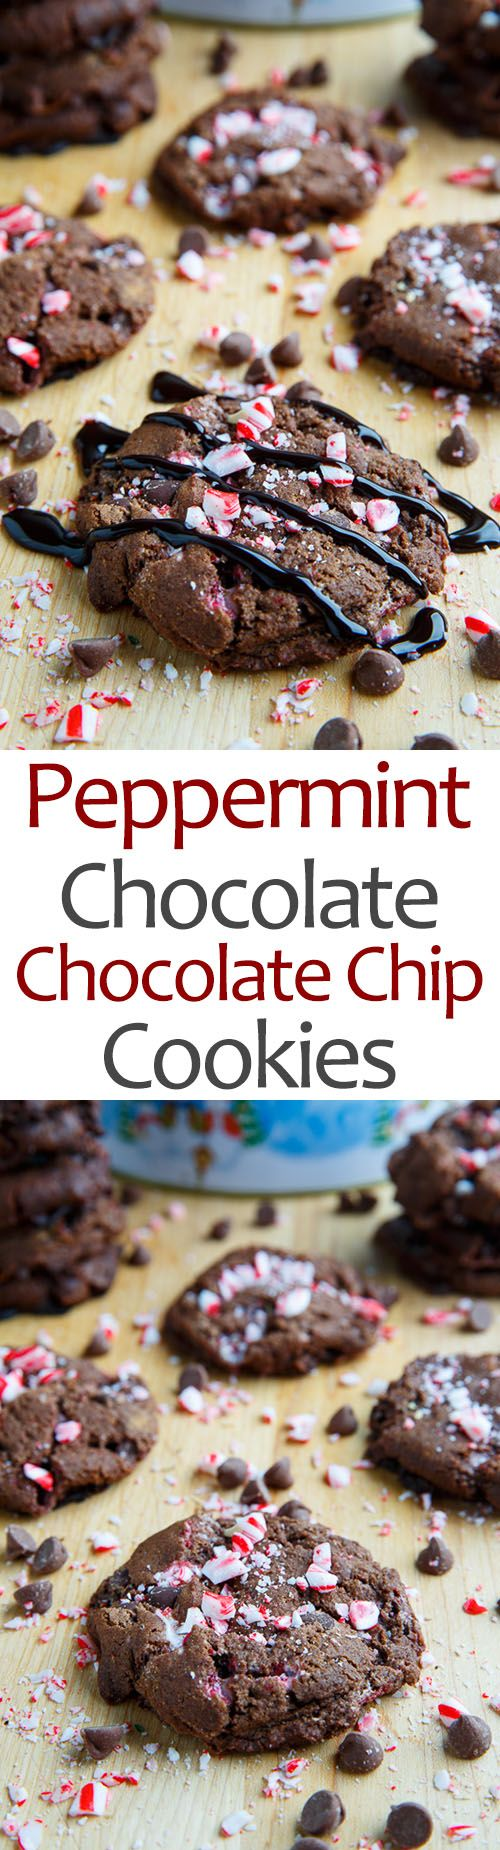 Peppermint Chocolate Chocolate Chip Cookies                                                                                                                                                                                 More